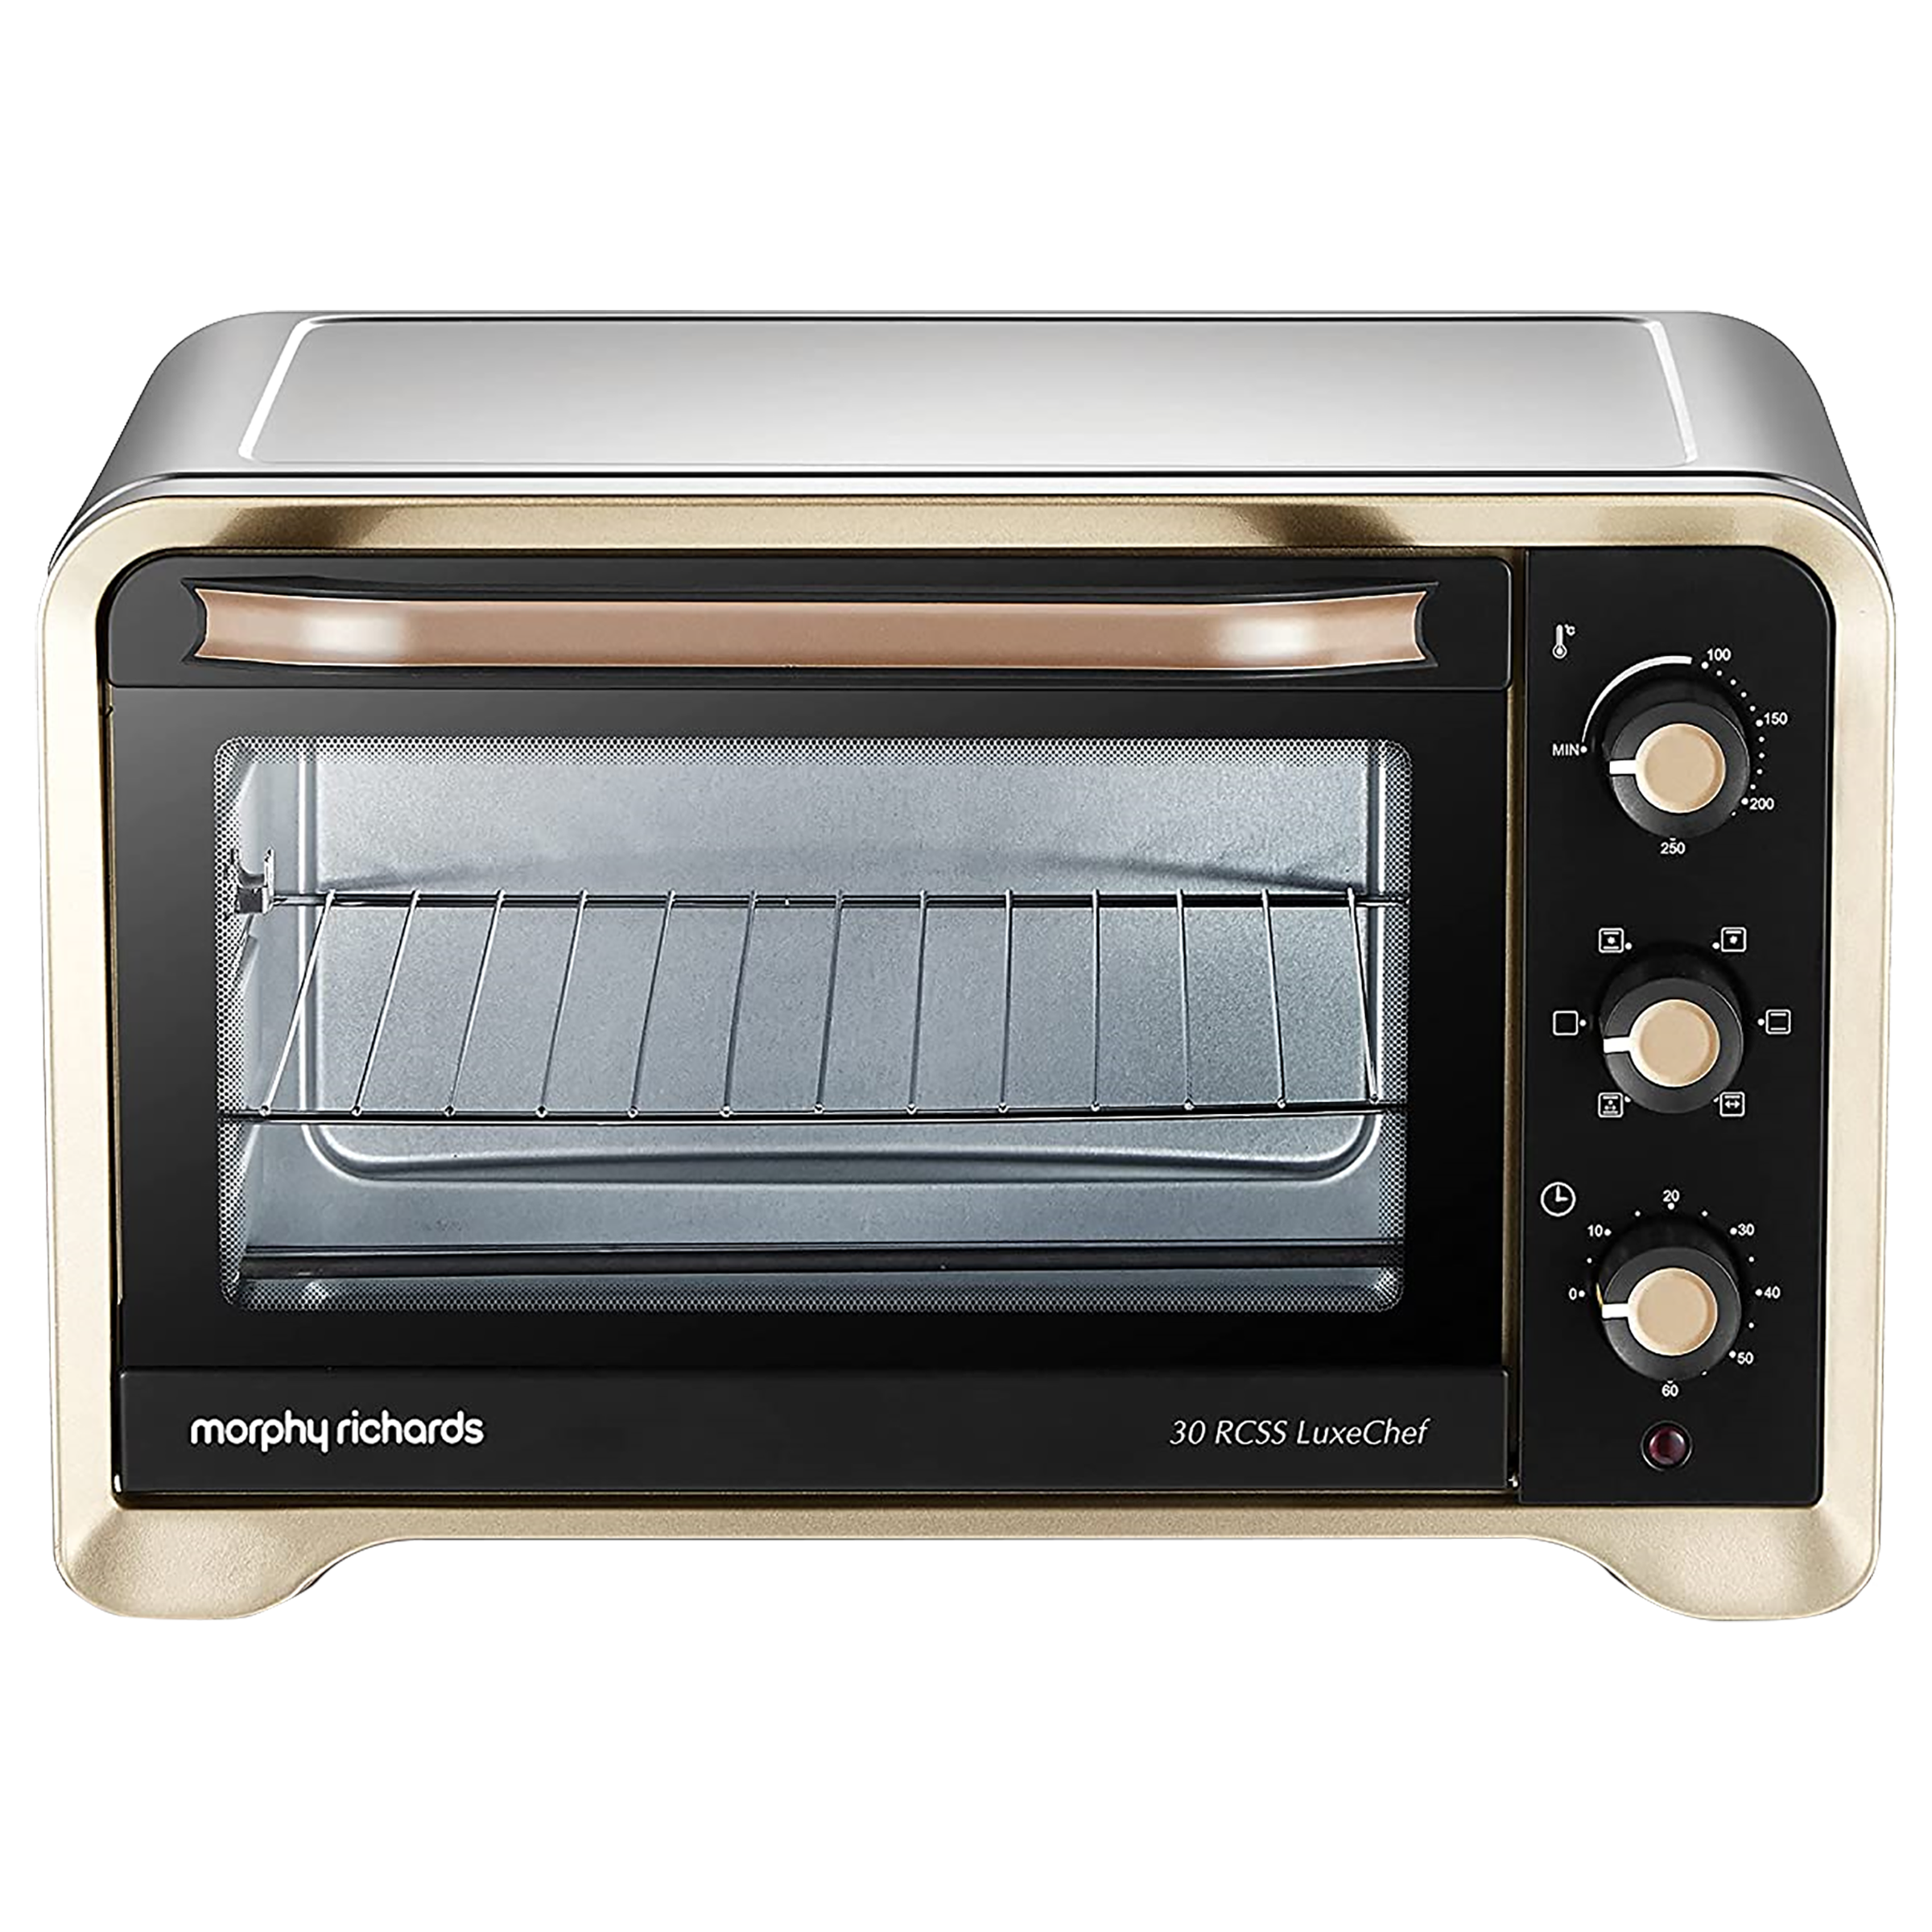 Morphy Richards 30 RCSS LuxeChef 30 Litres OTG (Integrated Oven Light, Gold)_1